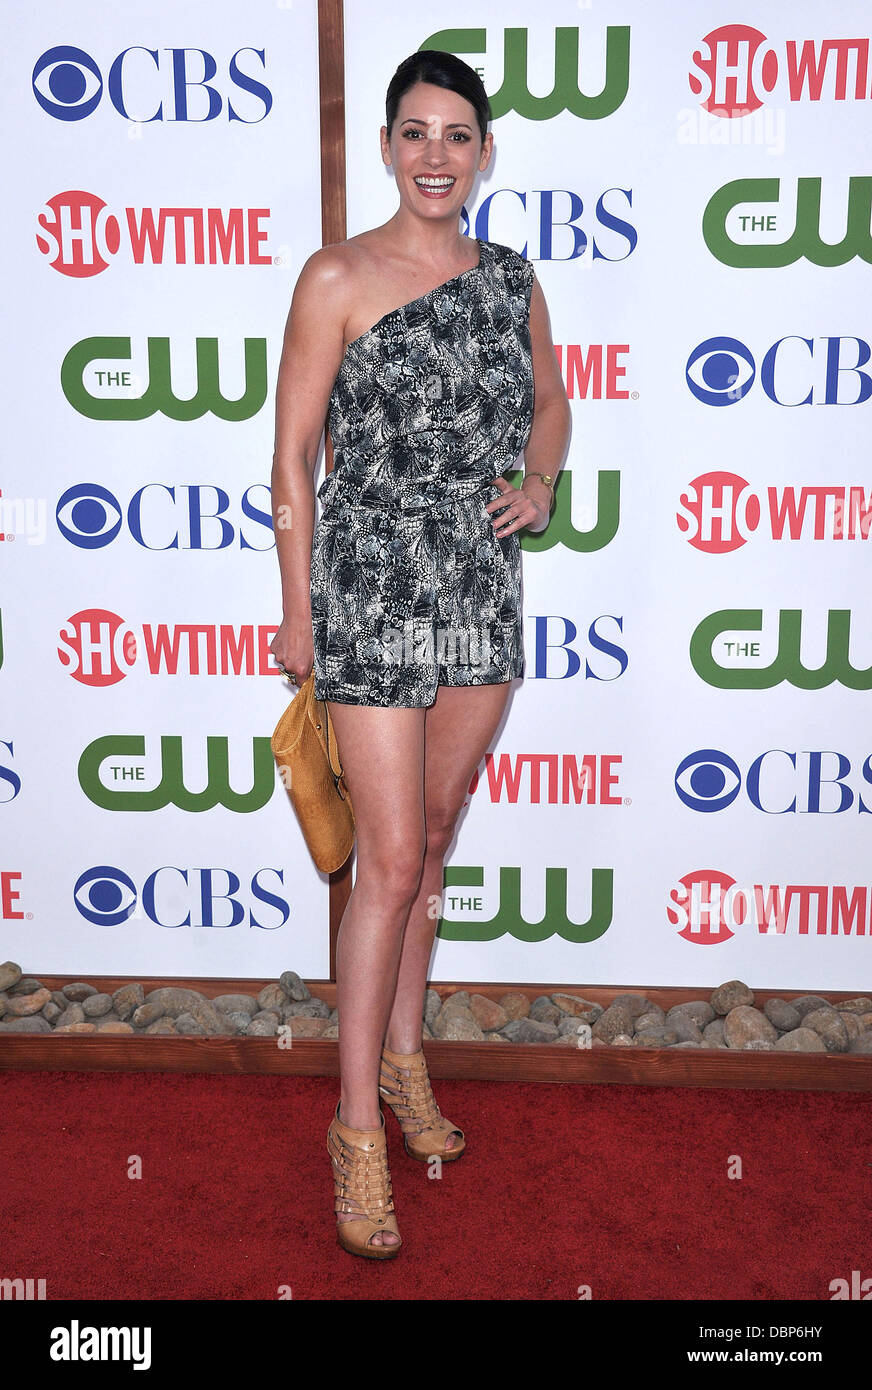 Paget Brewster Nude Photos 85